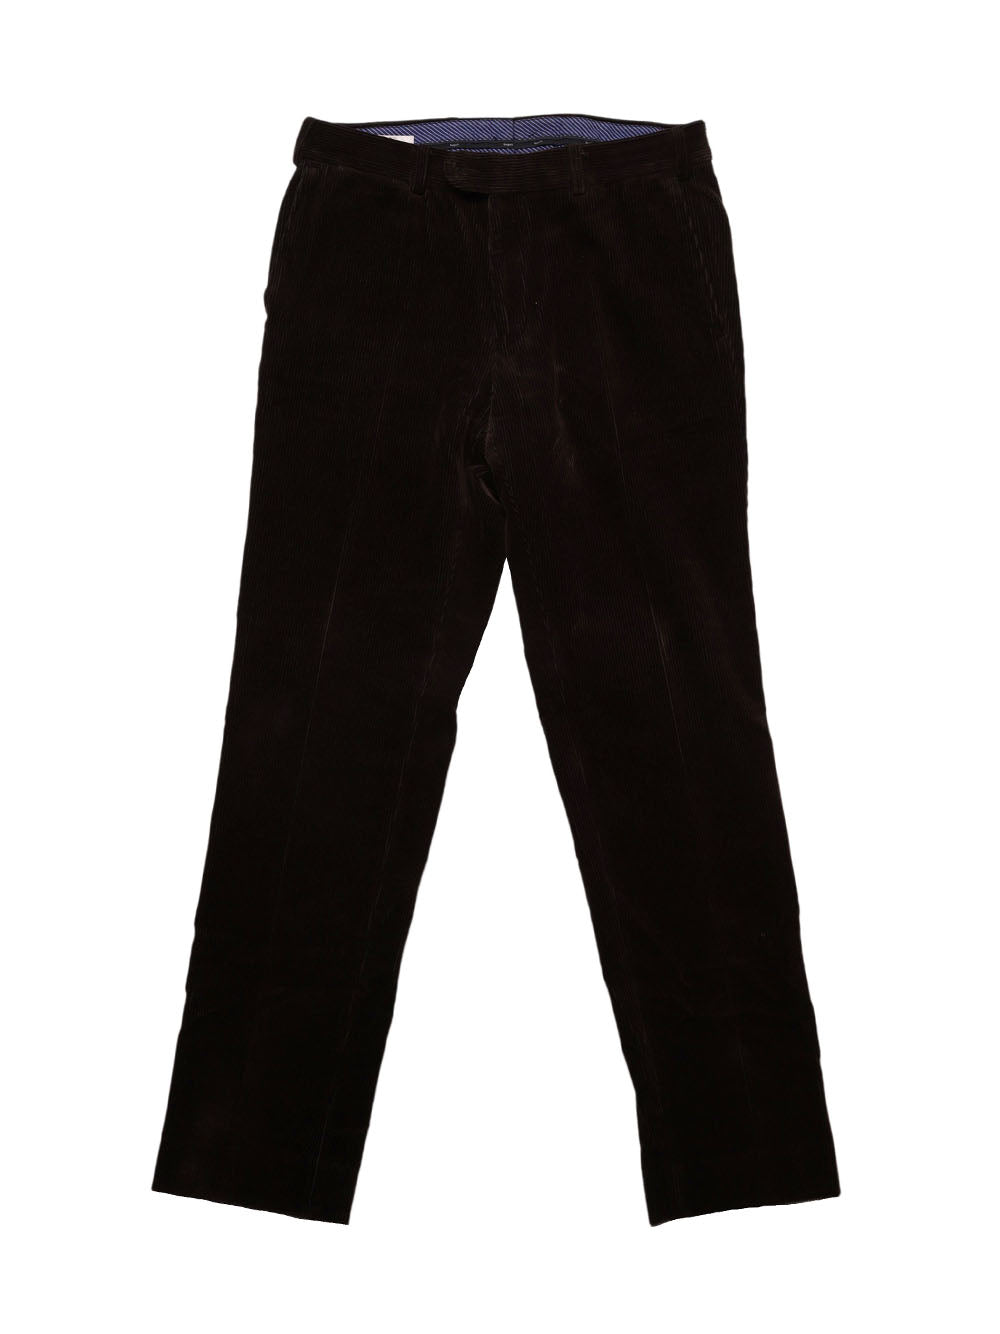 Front photo of Preloved Bugatti Green Man's trousers - size 38/M